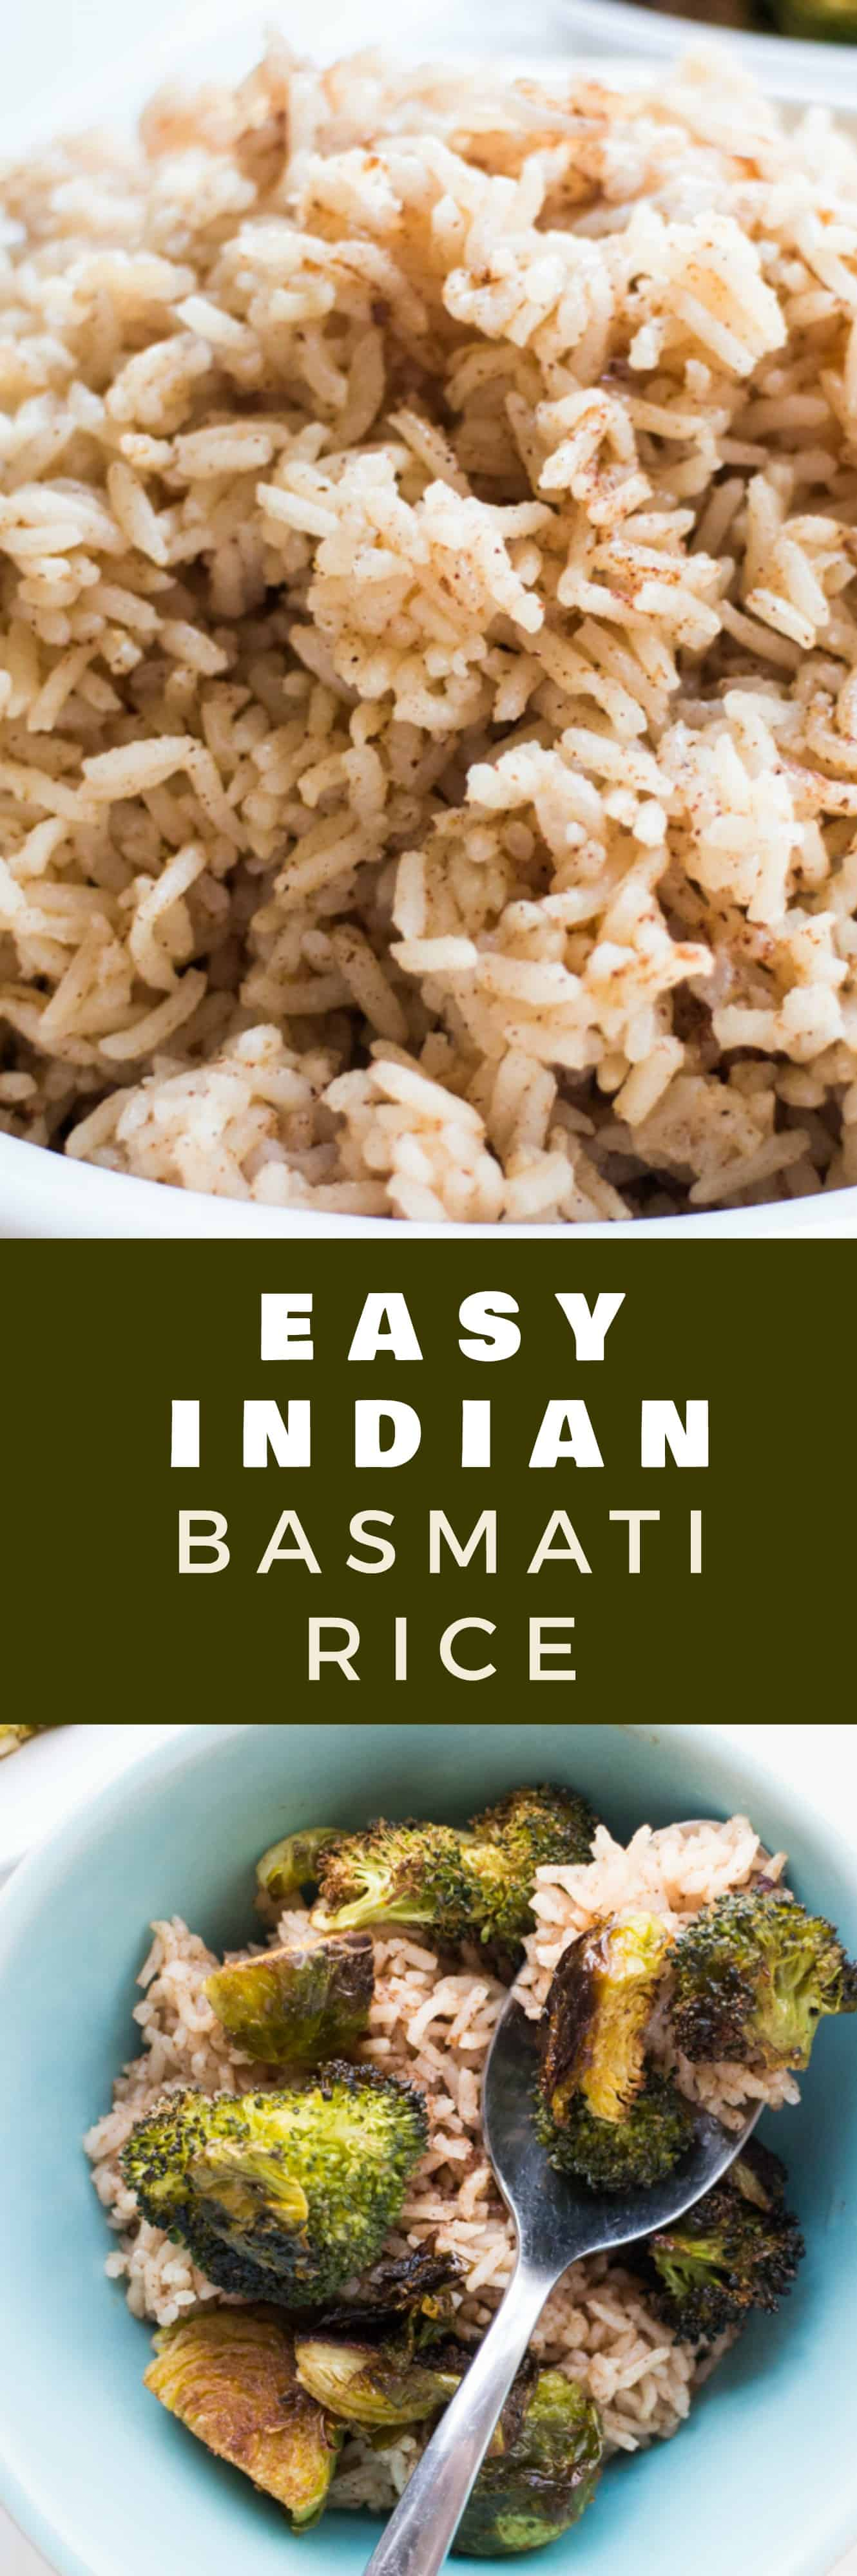 Learn how to cook PERFECT Basmati Indian Rice in under 30 minutes! This easy recipe uses basmati rice and fragrant spices to create authentic tasting Indian rice. Pair it with roasted vegetables to make a healthy, vegan meal for dinner!